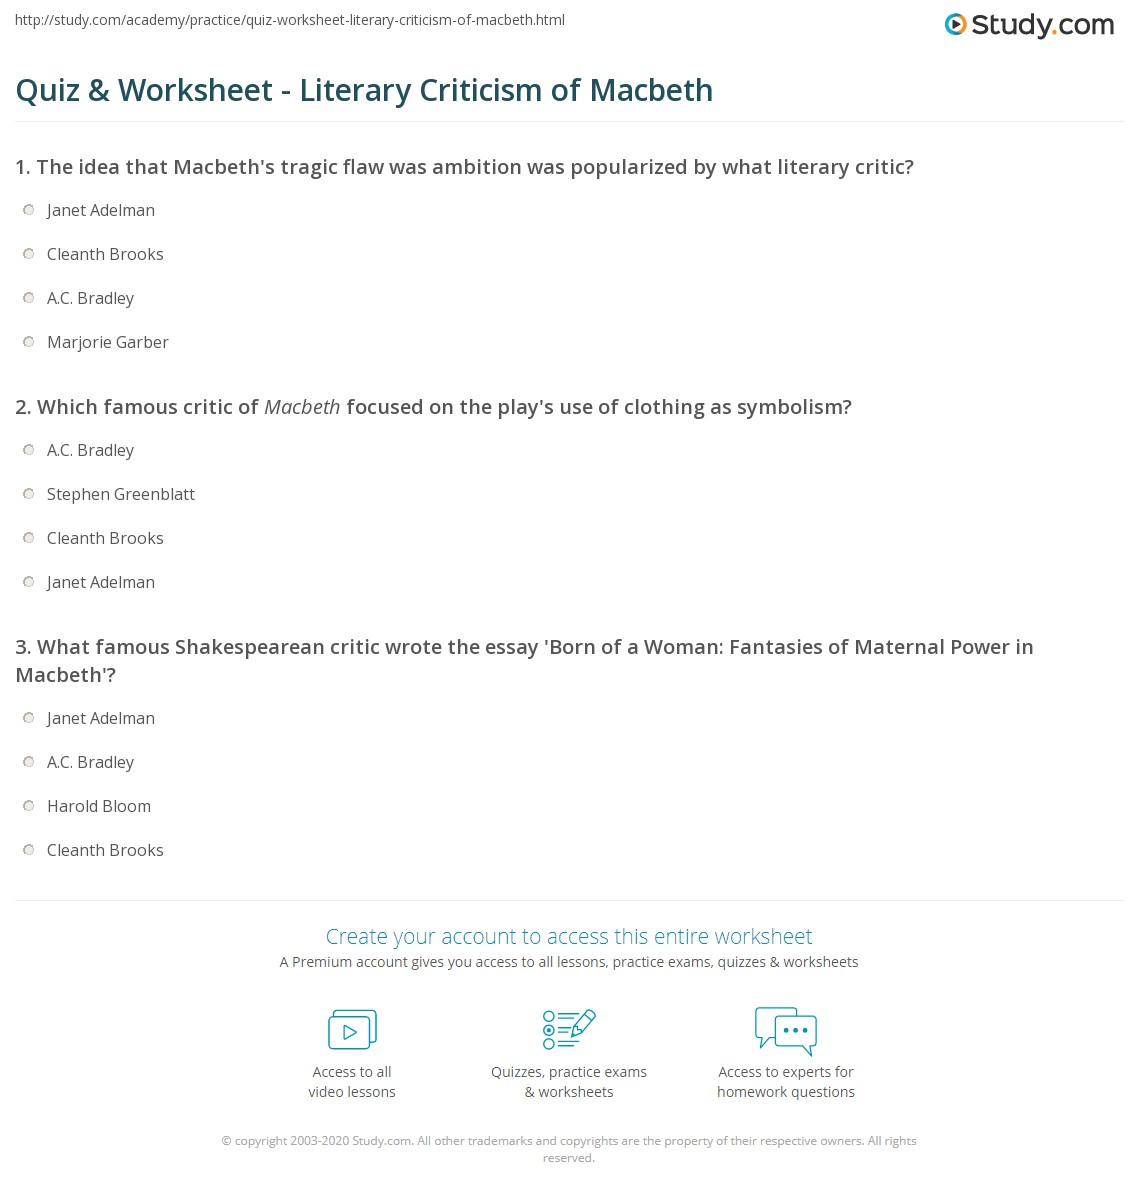 quiz worksheet literary criticism of macbeth com which famous critic of macbeth focused on the play s use of clothing as symbolism